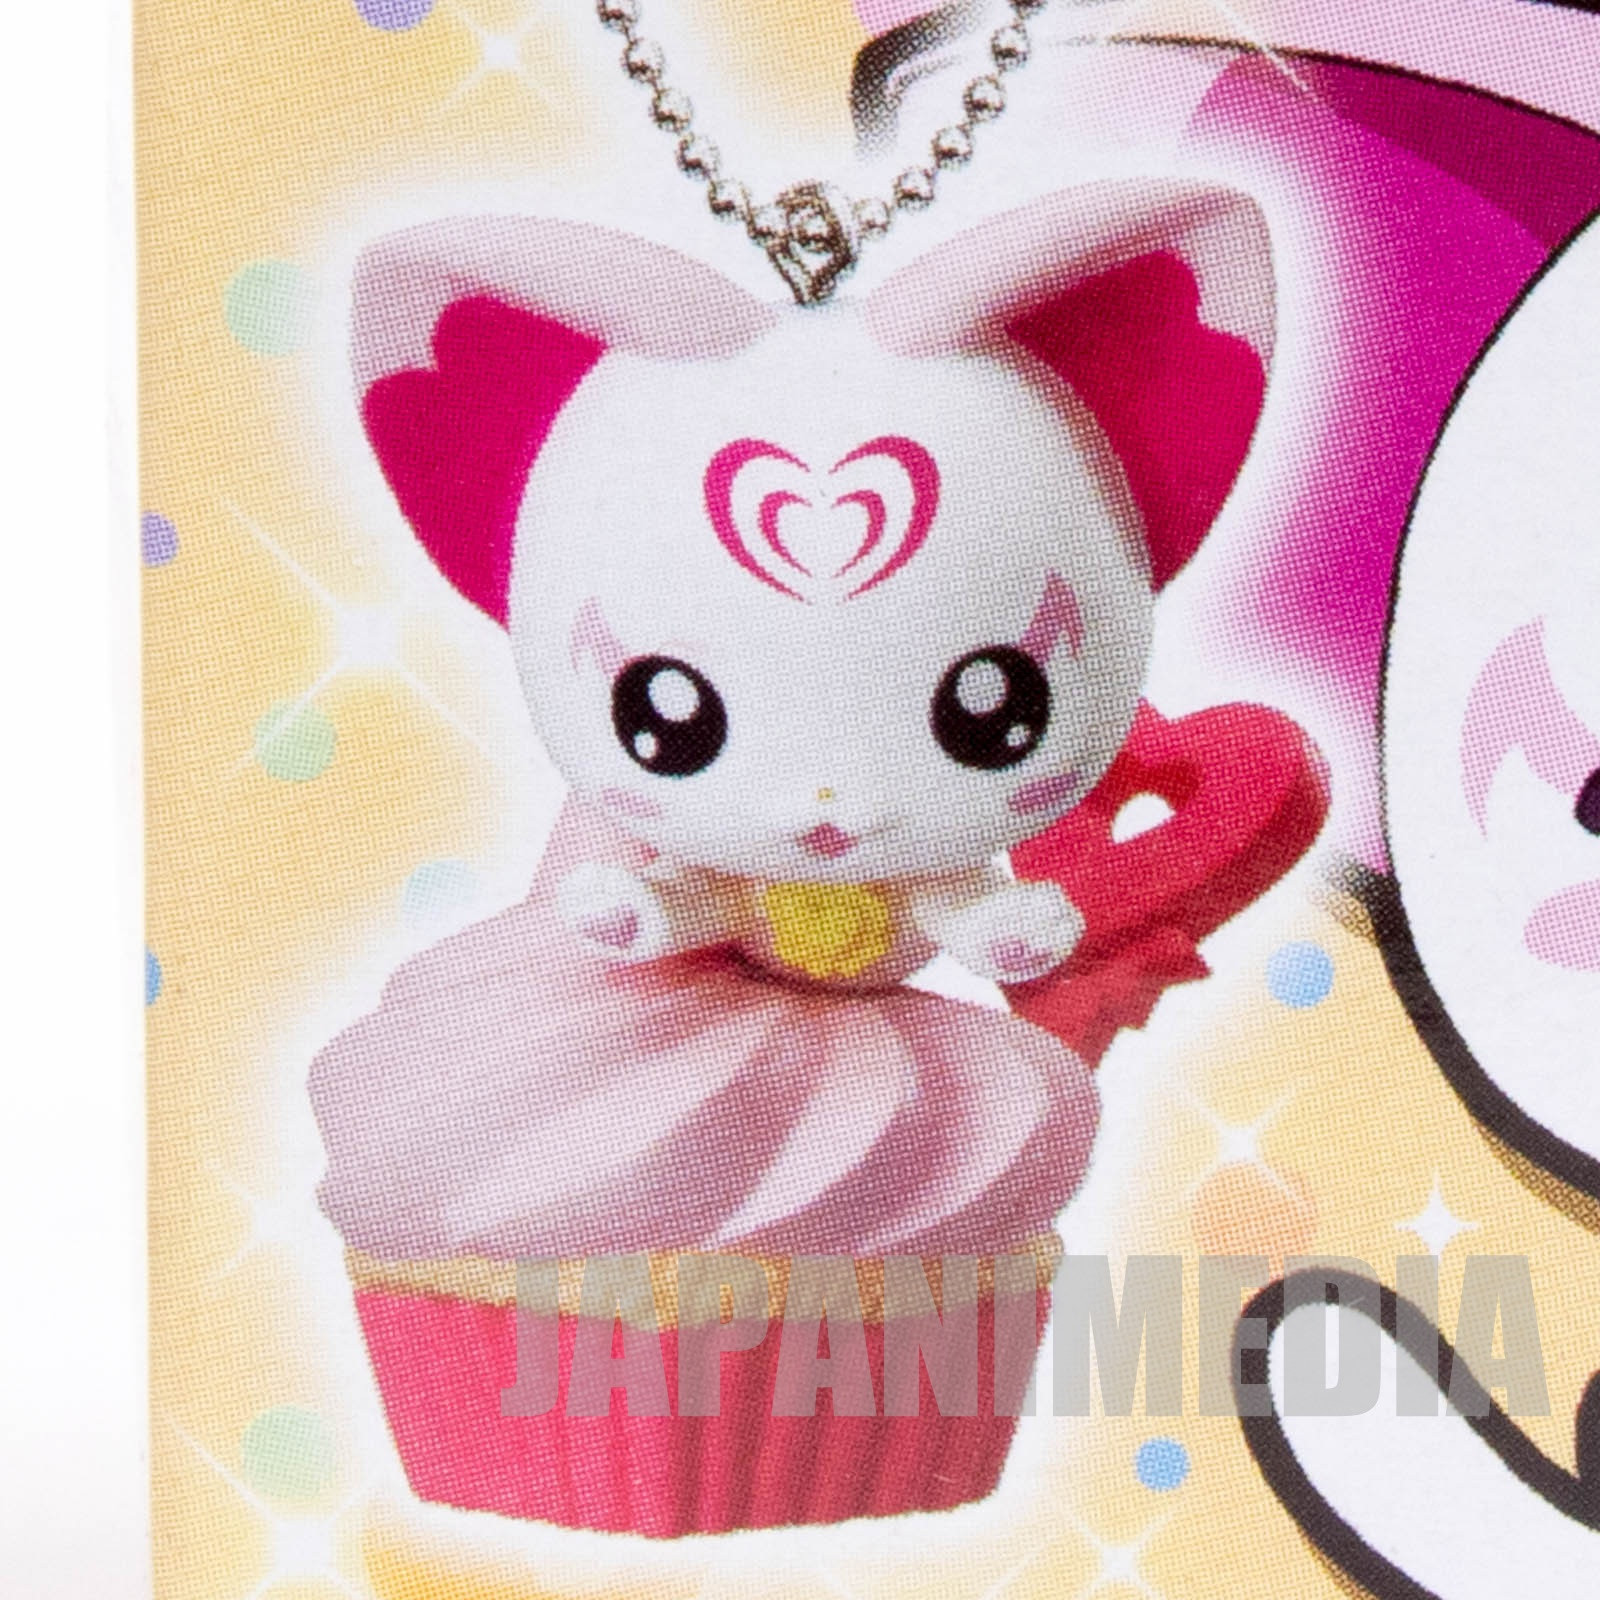 Suite PreCure Hummy PreCure Sweets mascot Figure Keychain JAPAN ANIME